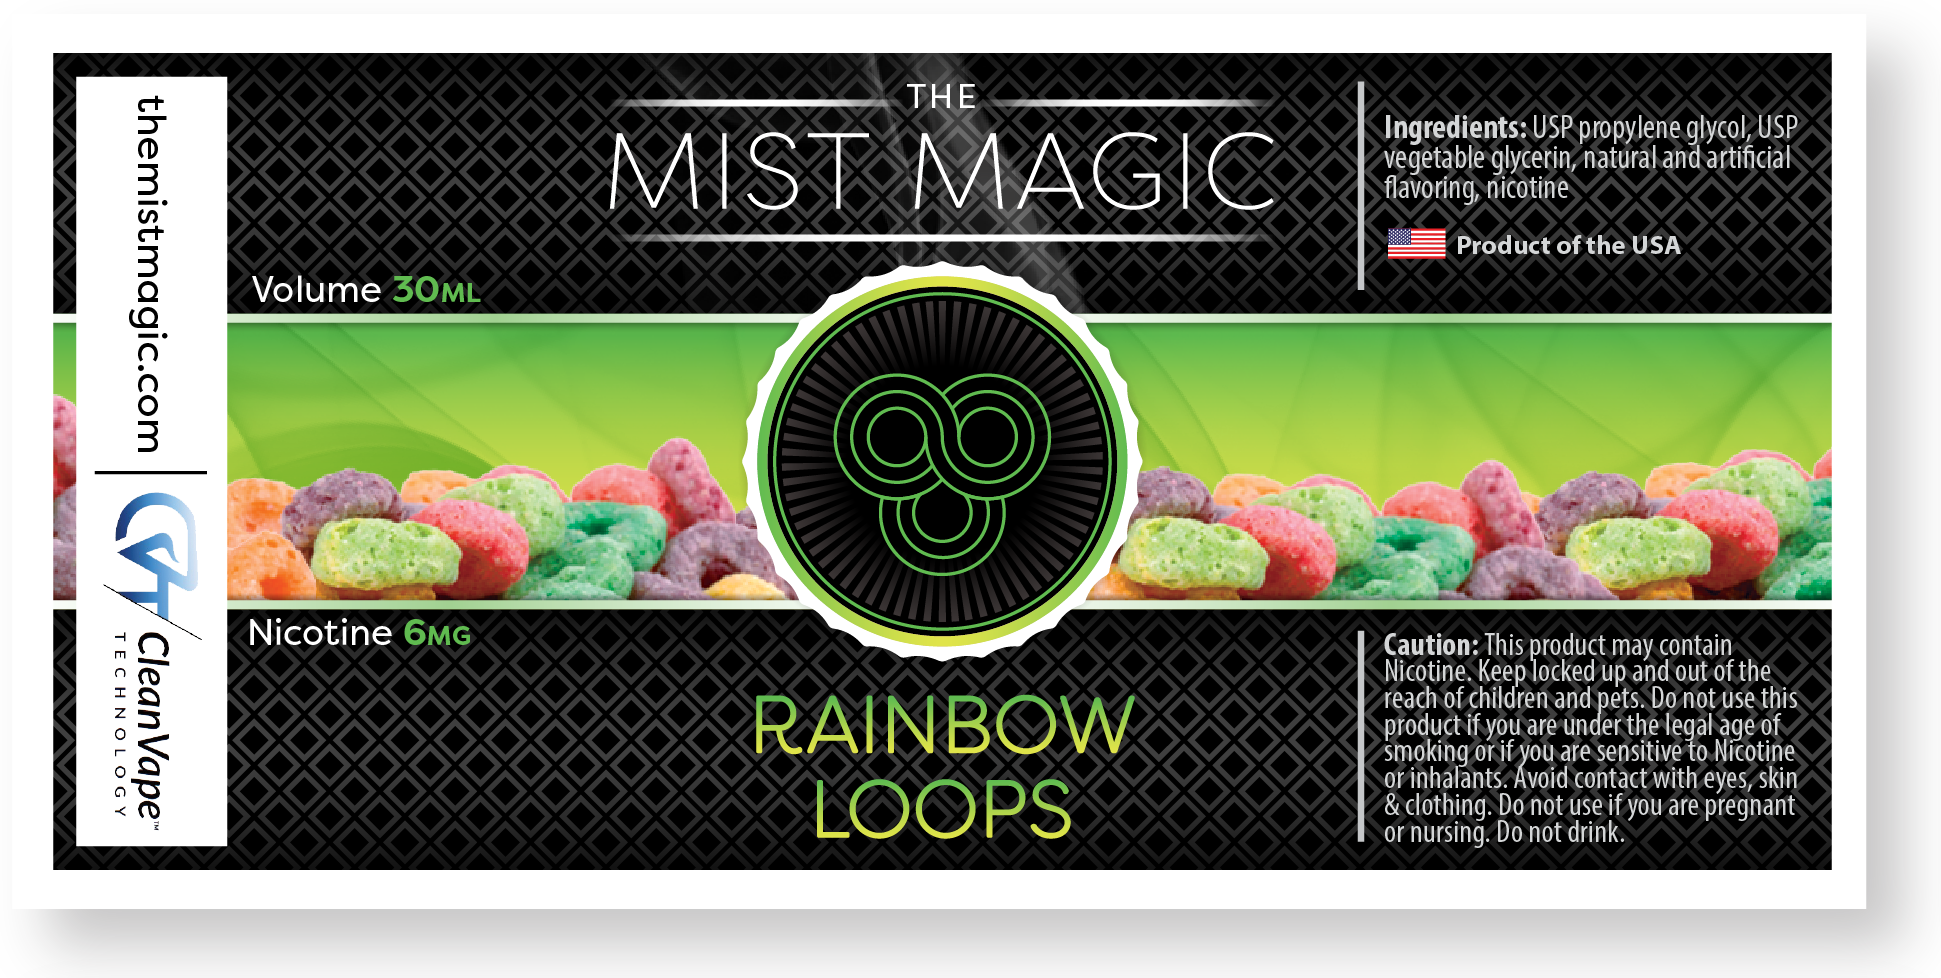 Mist Magic product packaging